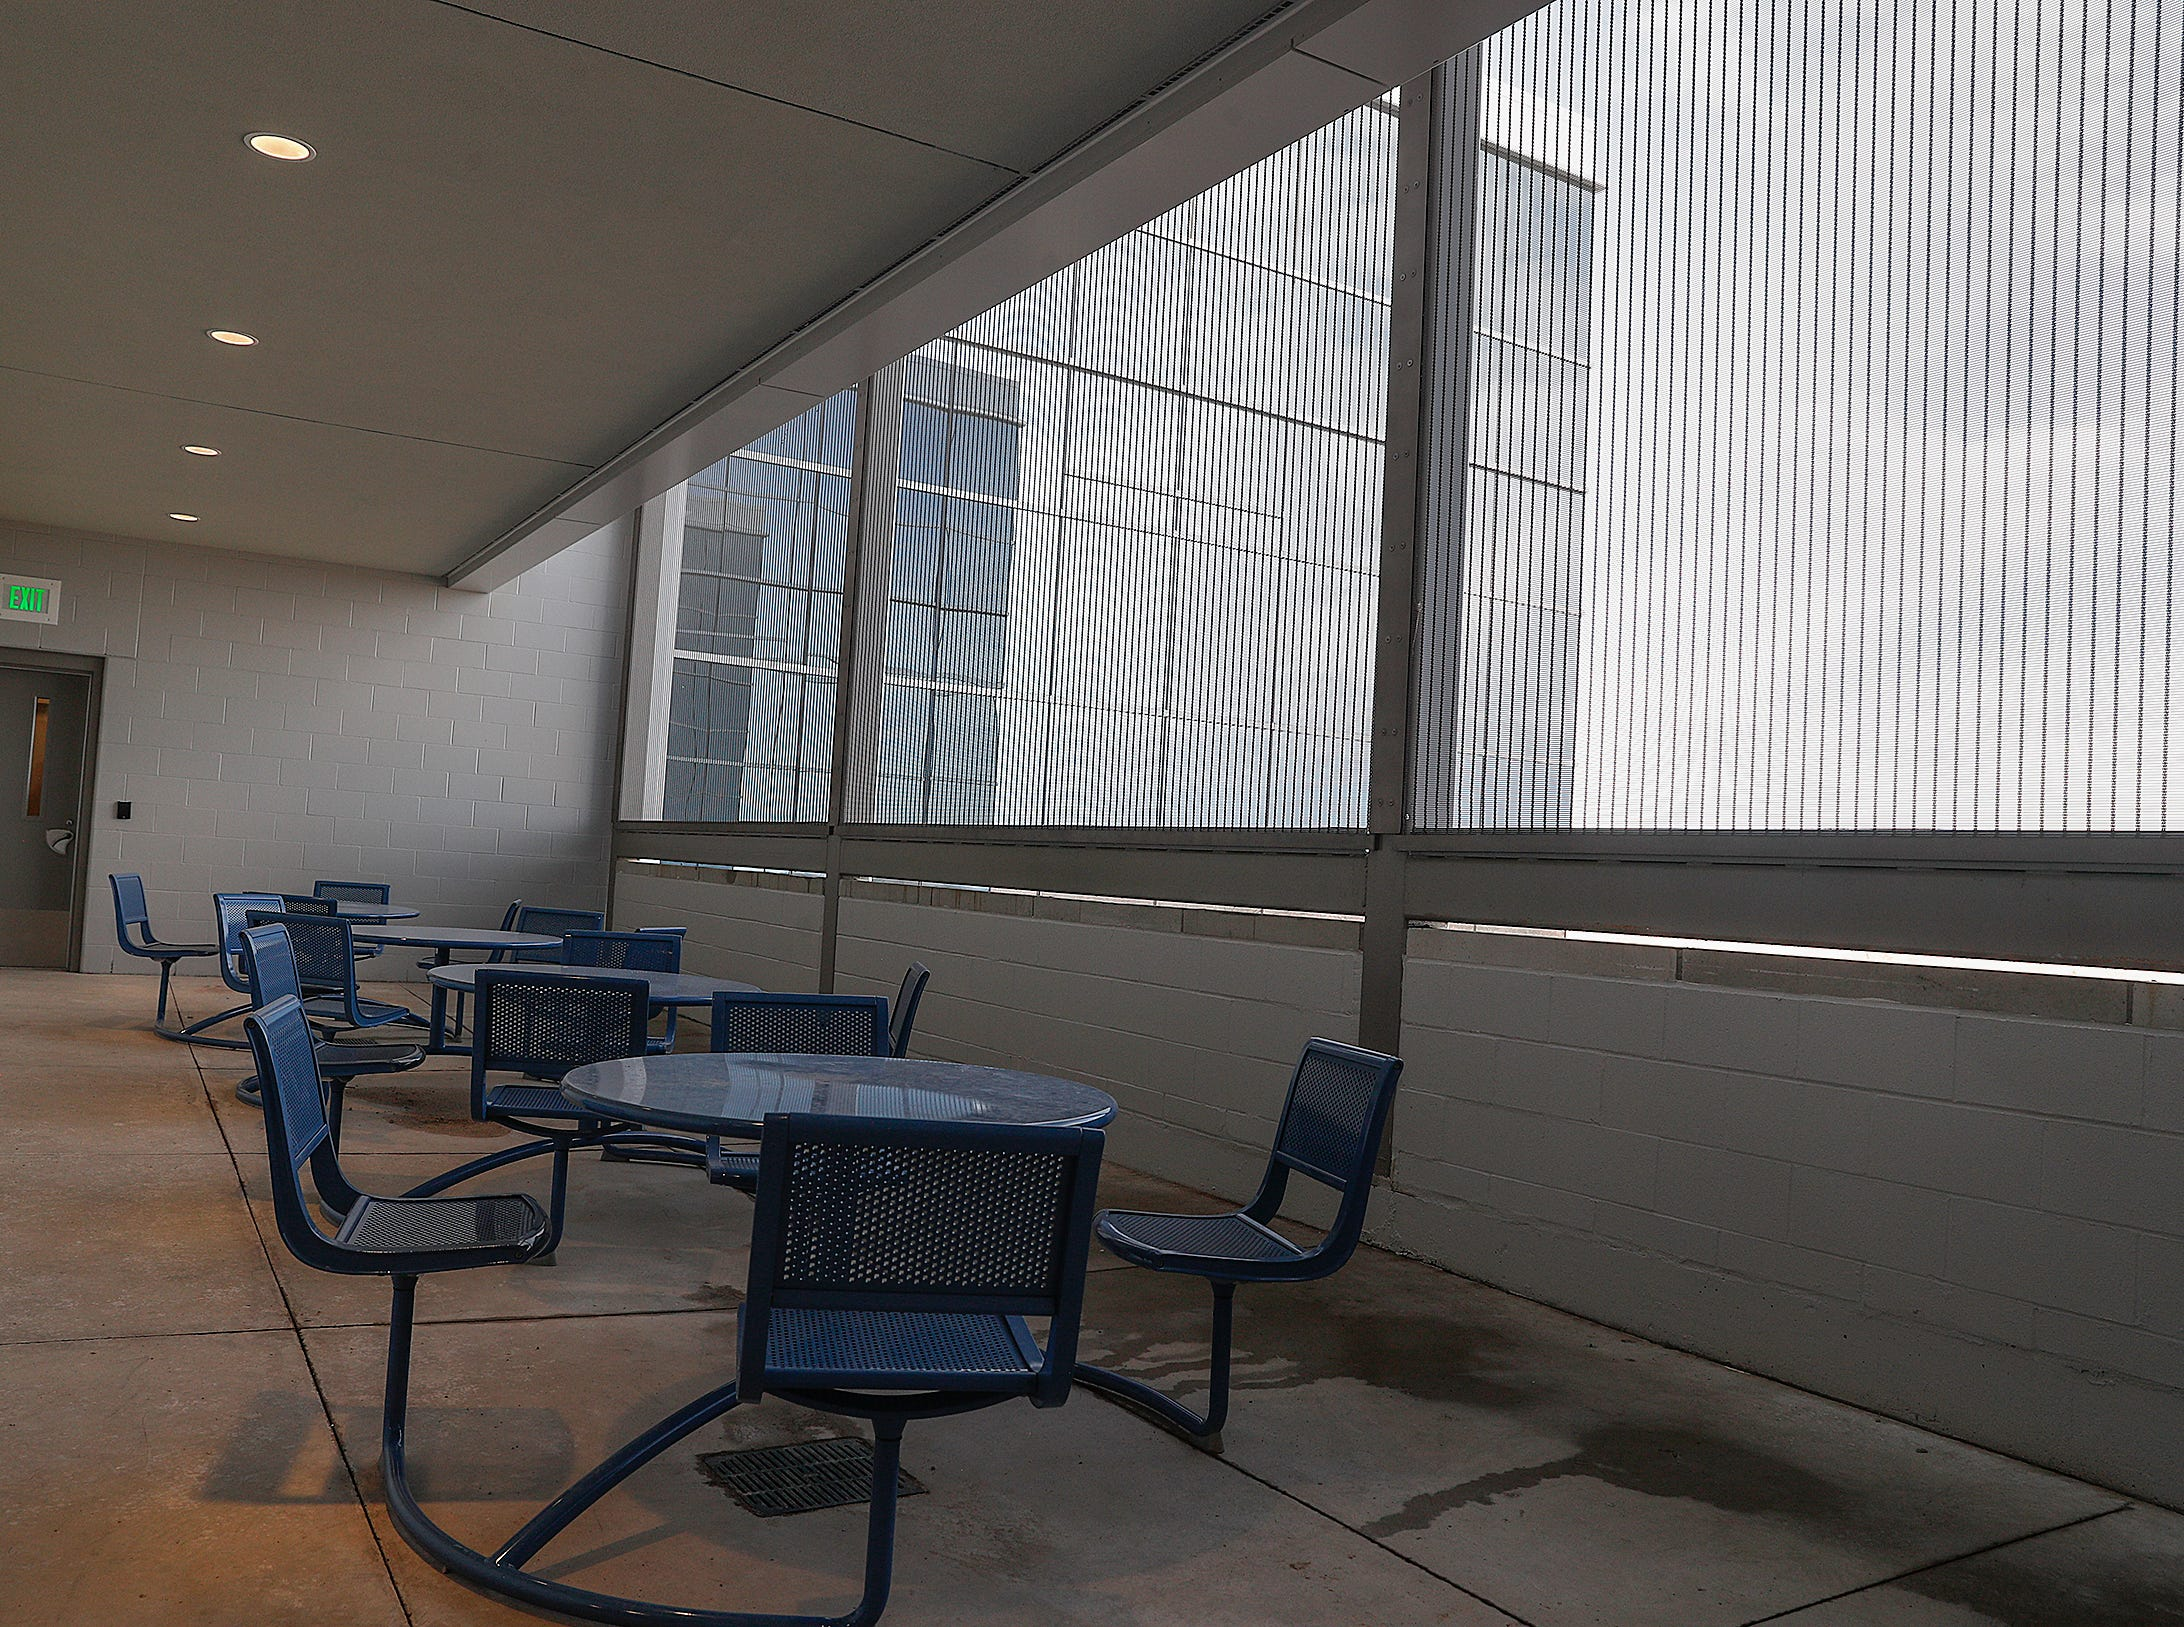 The outside terrace at the new NeuroDiagnostic Institute, at 5435 E 16th St., will replace LaRue Carter as the center for mental health care on Wednesday, March 13, 2019.